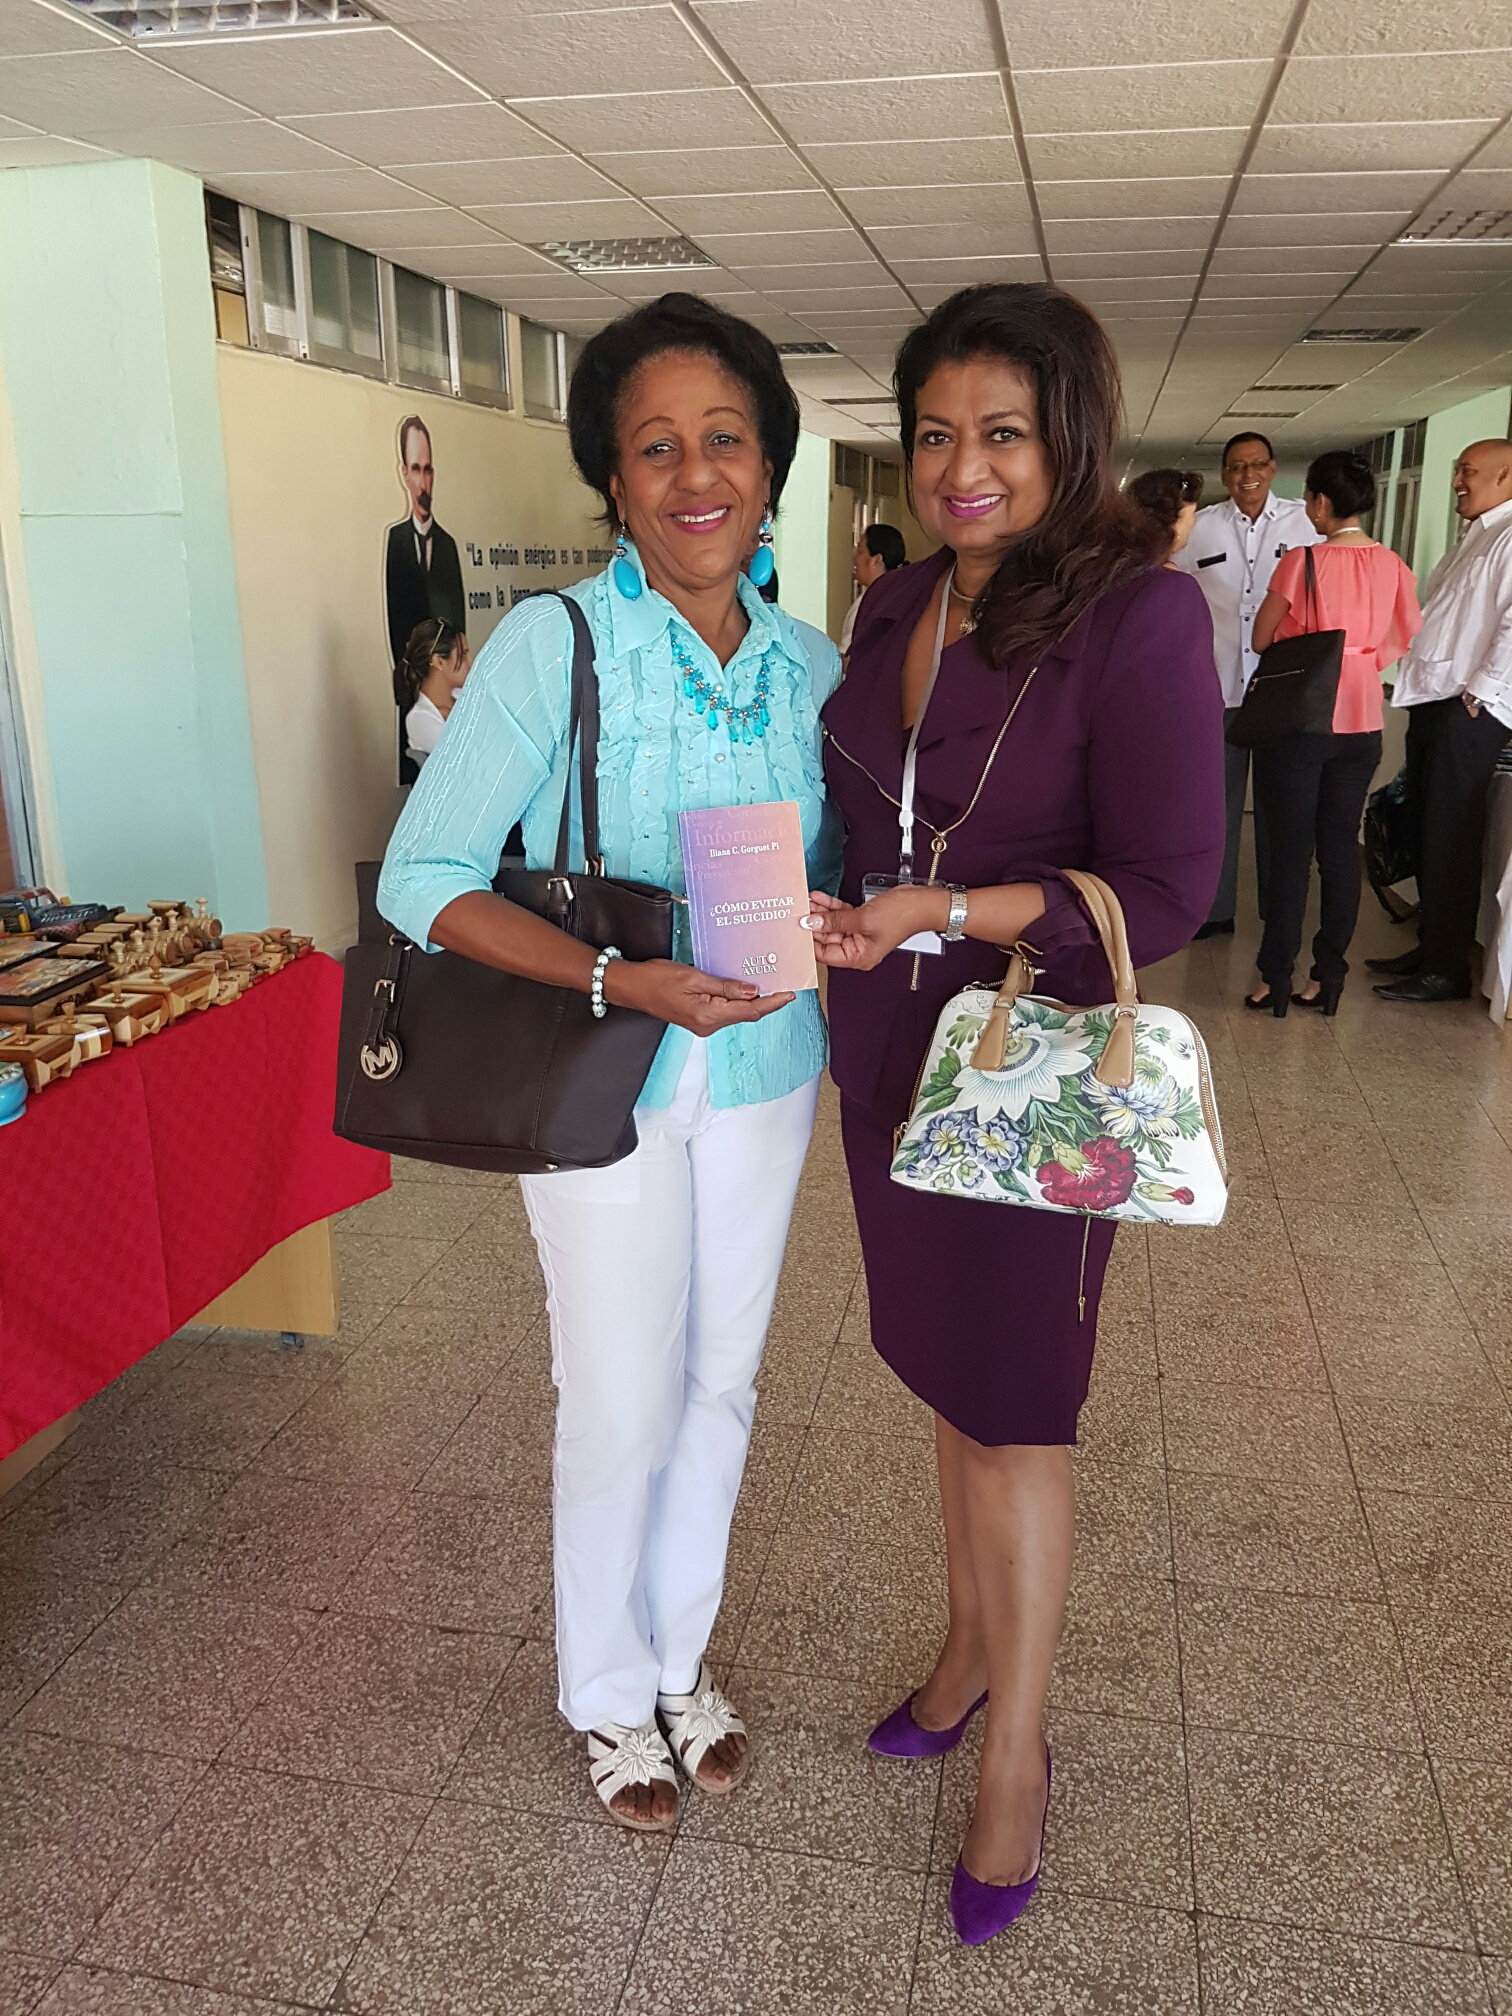 A participant with Mrs. Singh-Bodden at the Conference.